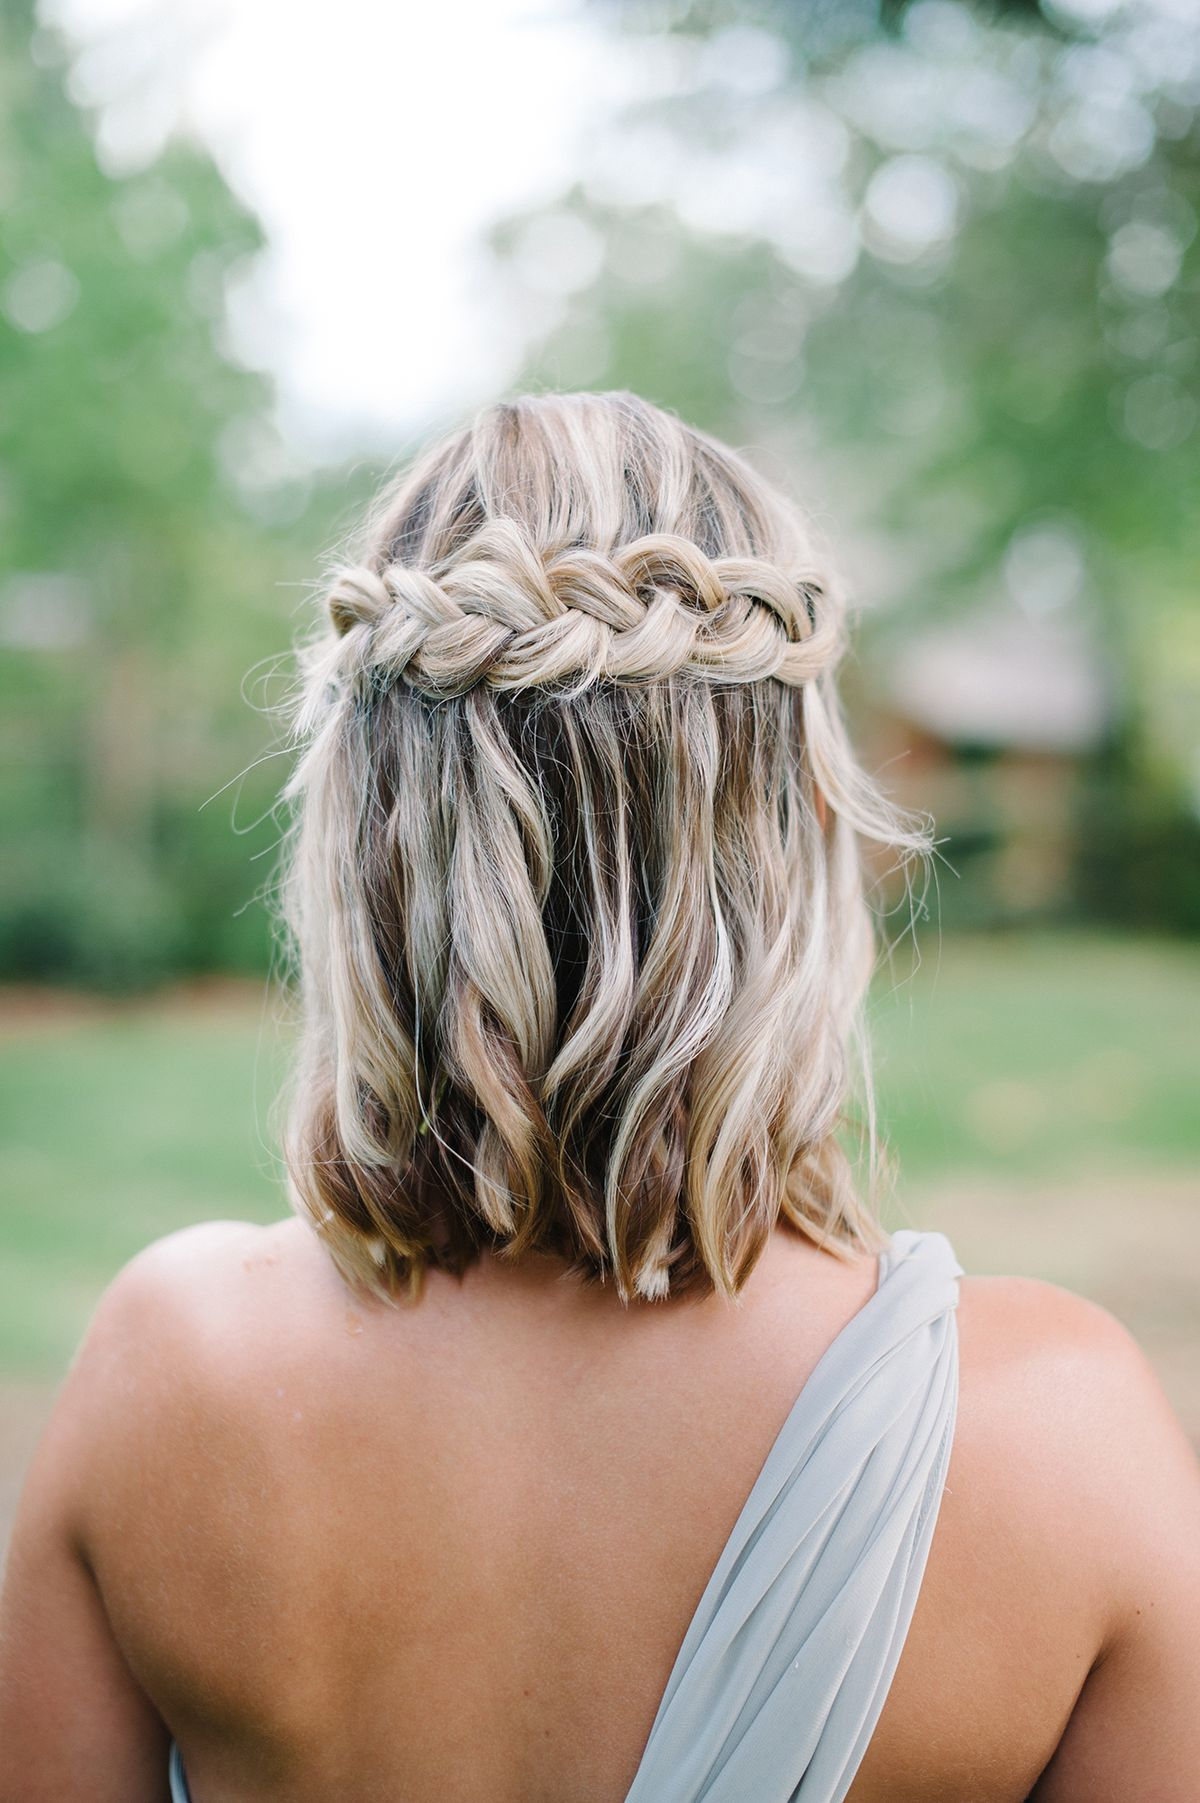 Simple wedding hairstyles best photos nynns wedding pinterest